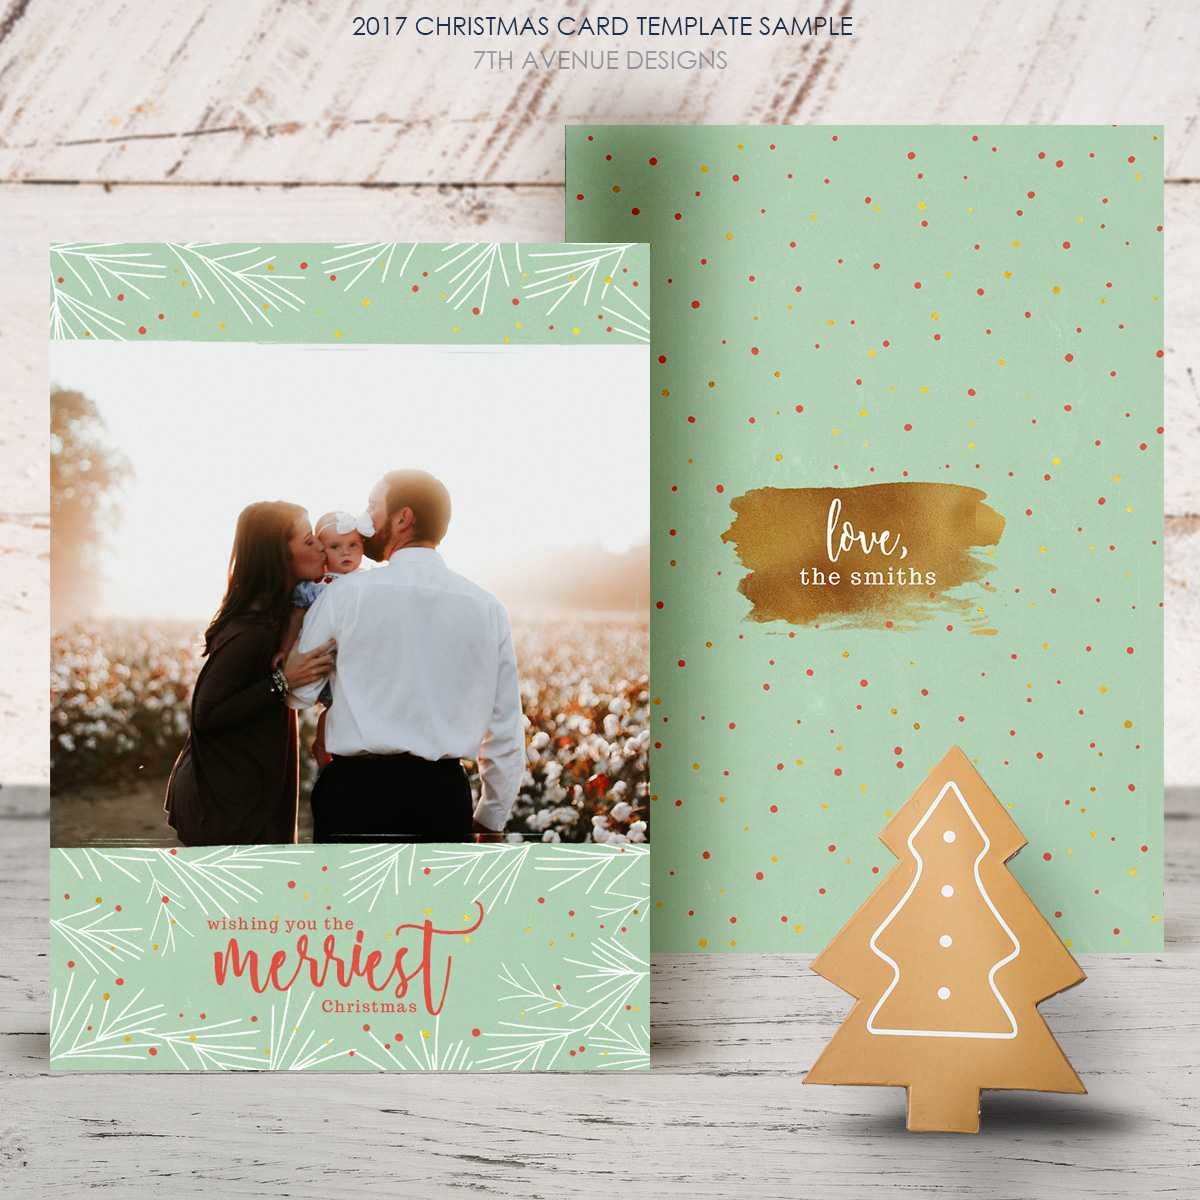 Free Christmas Card 2017 [Freecc2017] - It's Free In Free Christmas Card Templates For Photographers